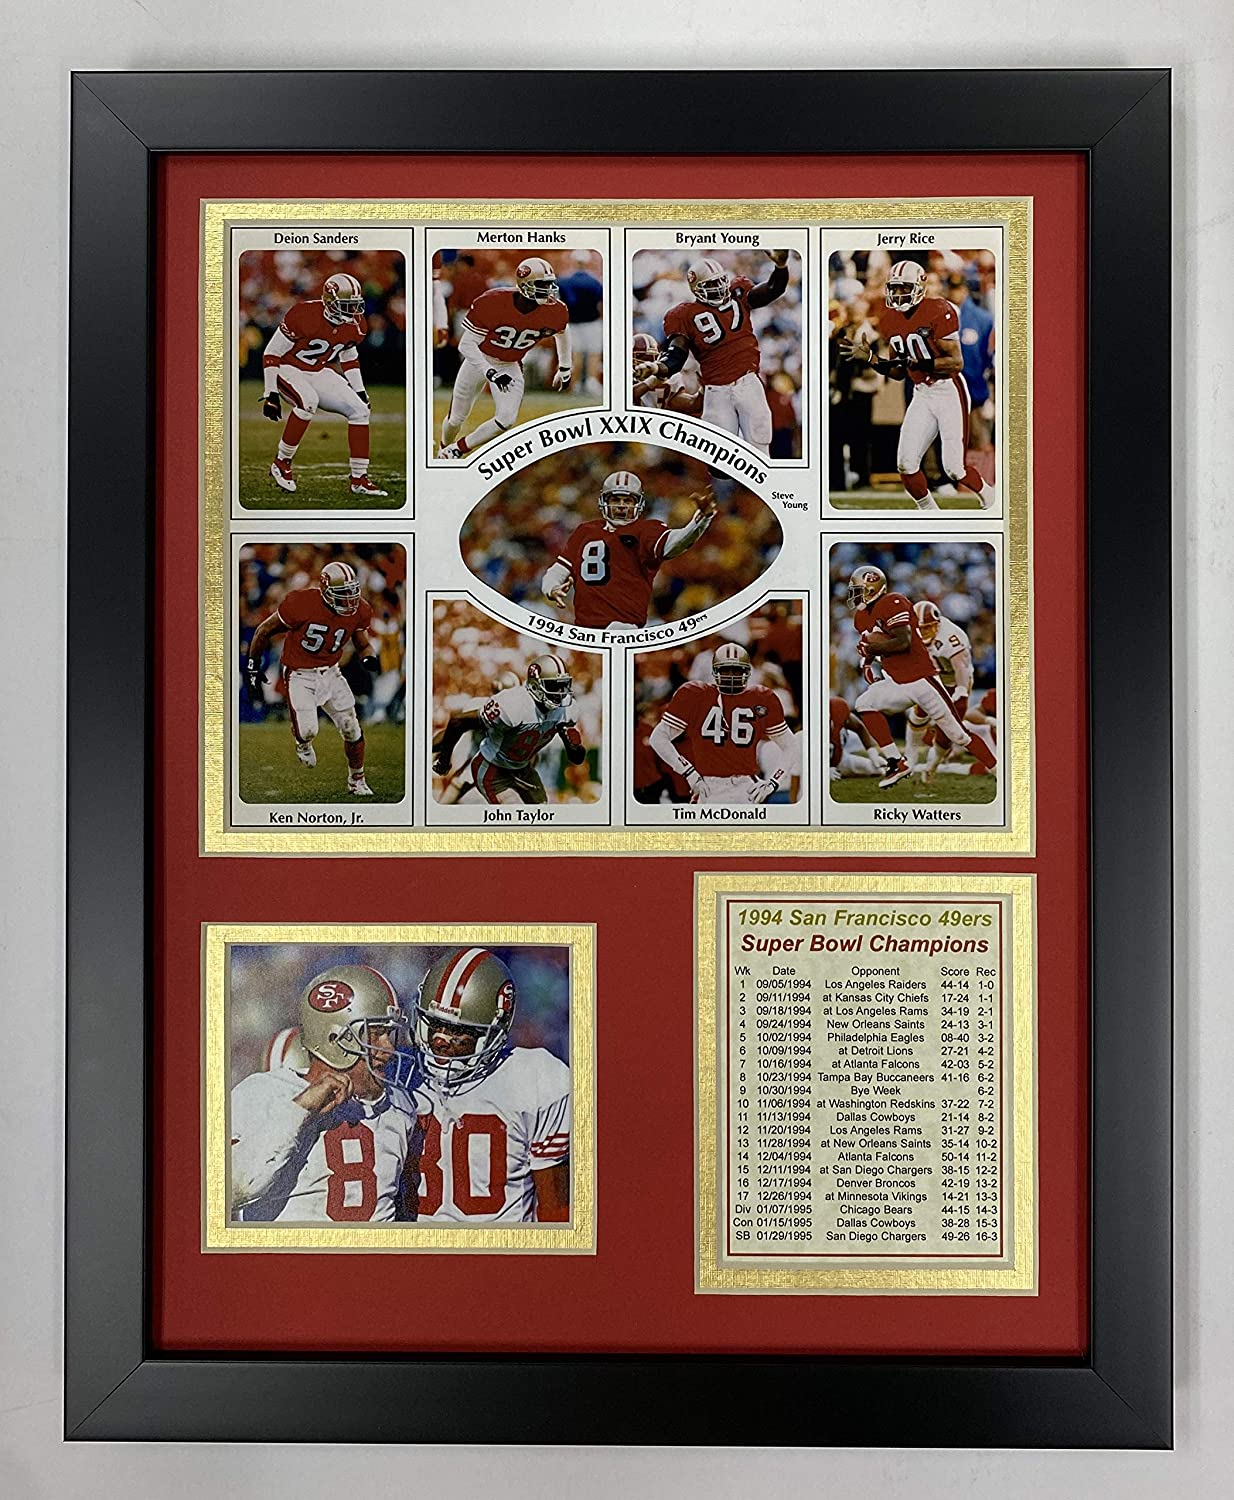 """San Francisco 49ers - 1994 Super Bowl Champions 11"""" x 14"""" Framed Photo Collage by Legends Never Die, Inc."""